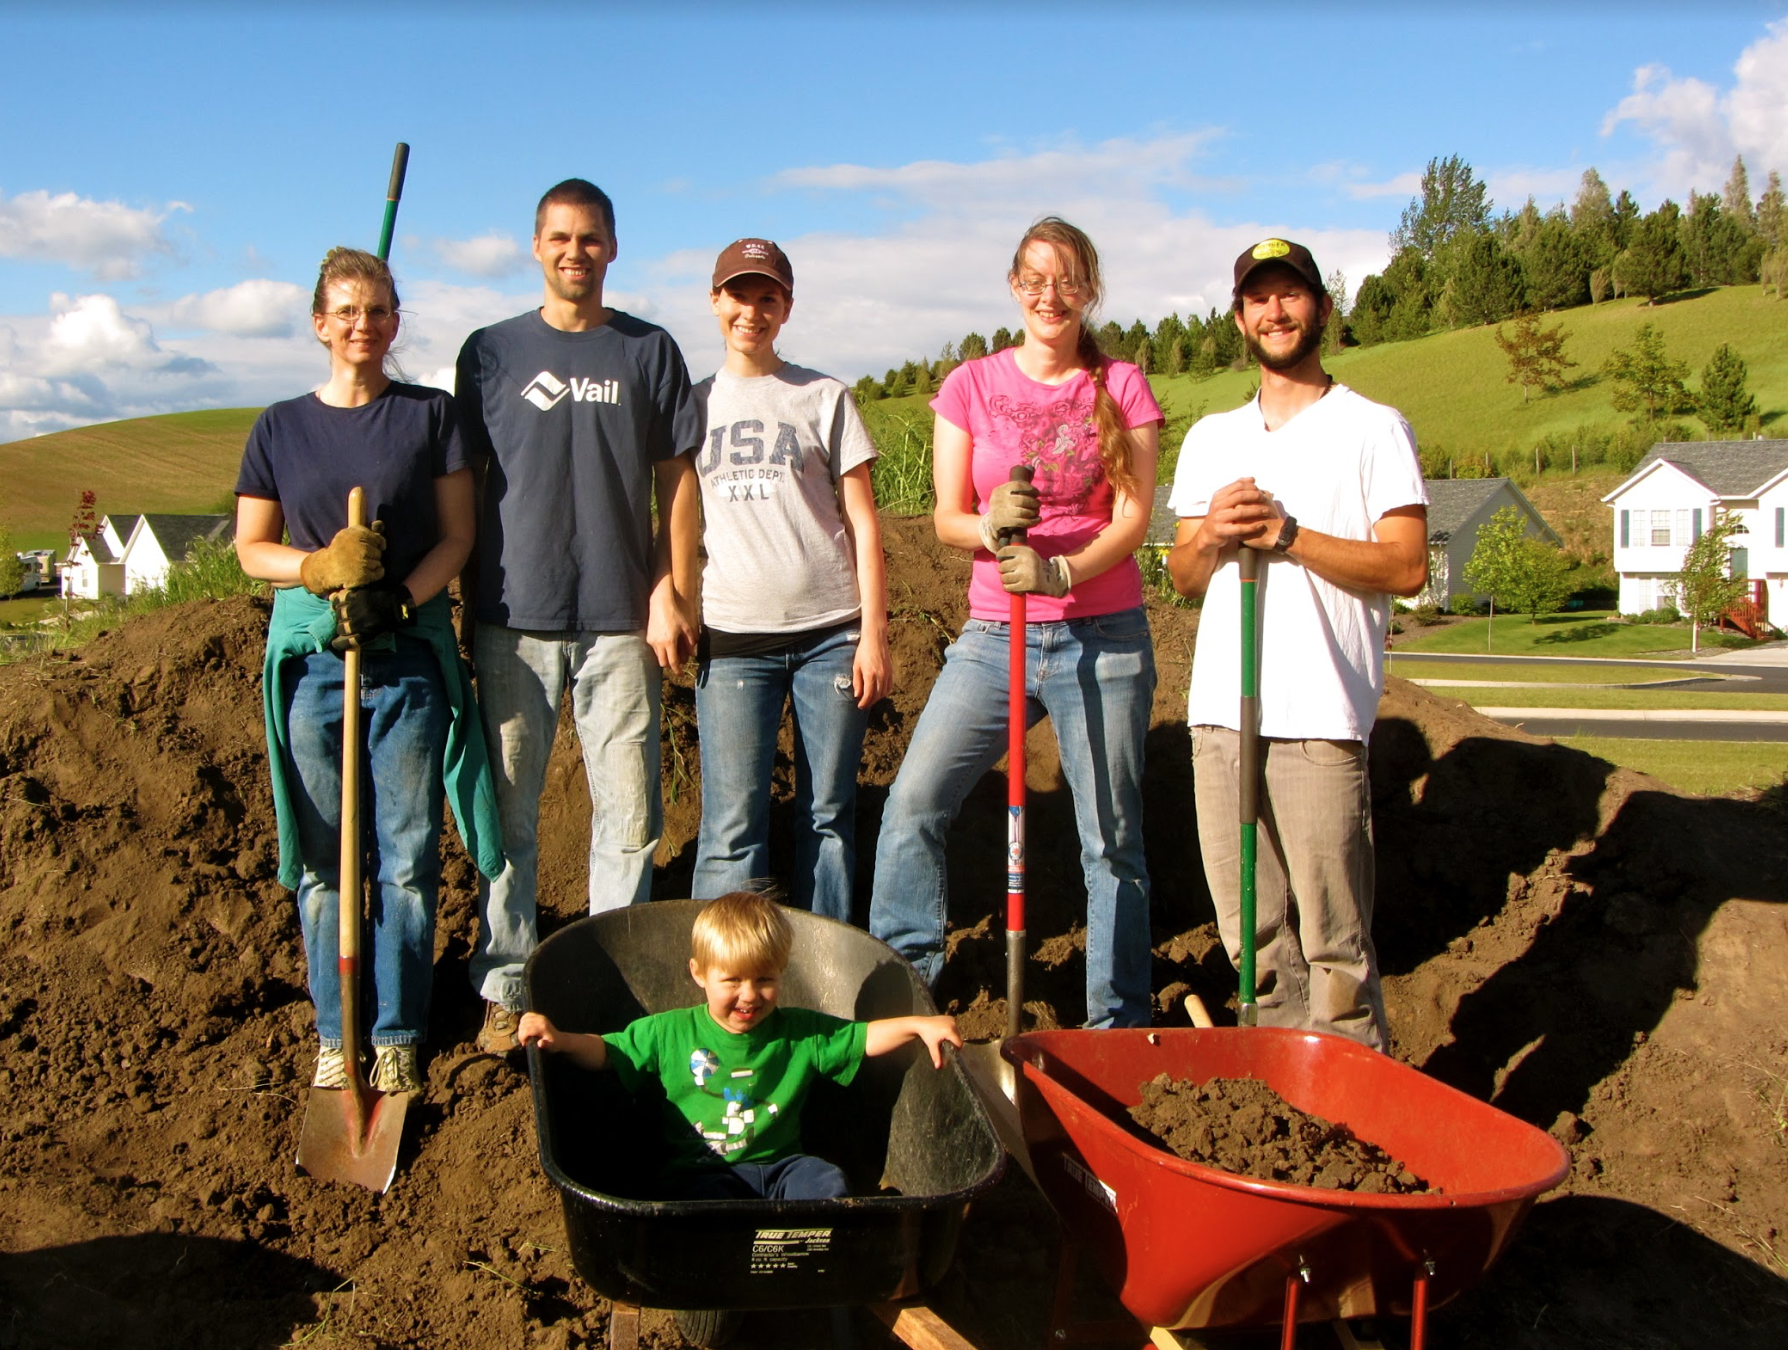 Volunteer on your time - Whether you're a busy family wanting to pick fruit on the weekends or a full-time student in need of service hours, Backyard Harvest wants to make it easy for everyone to pitch in and help out. Click below to send our Volunteer Coordinator a request to be added to our weekly e-mail of upcoming volunteer opportunities, and follow us on Facebook for events that may be of interest!